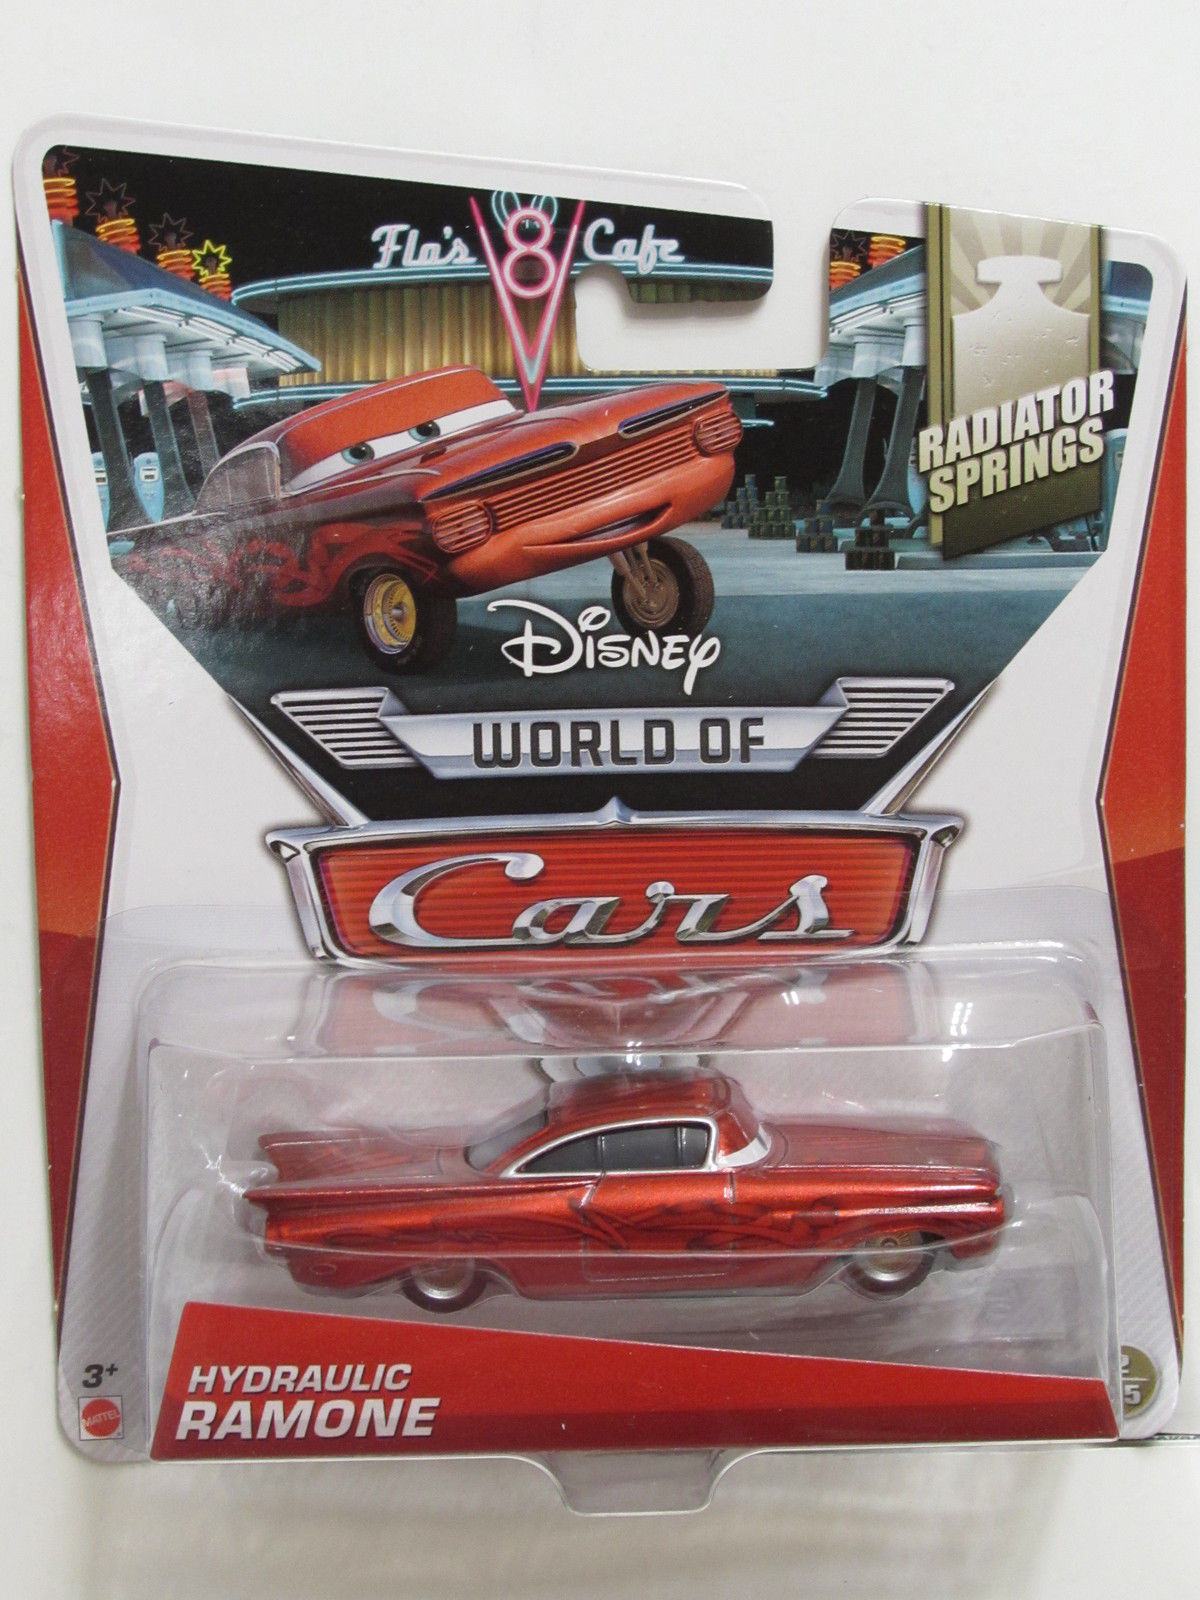 DISNEY PIXAR CARS WORLD OF CARS RADIATOR SPRINGS HYDRAULIC RAMONE